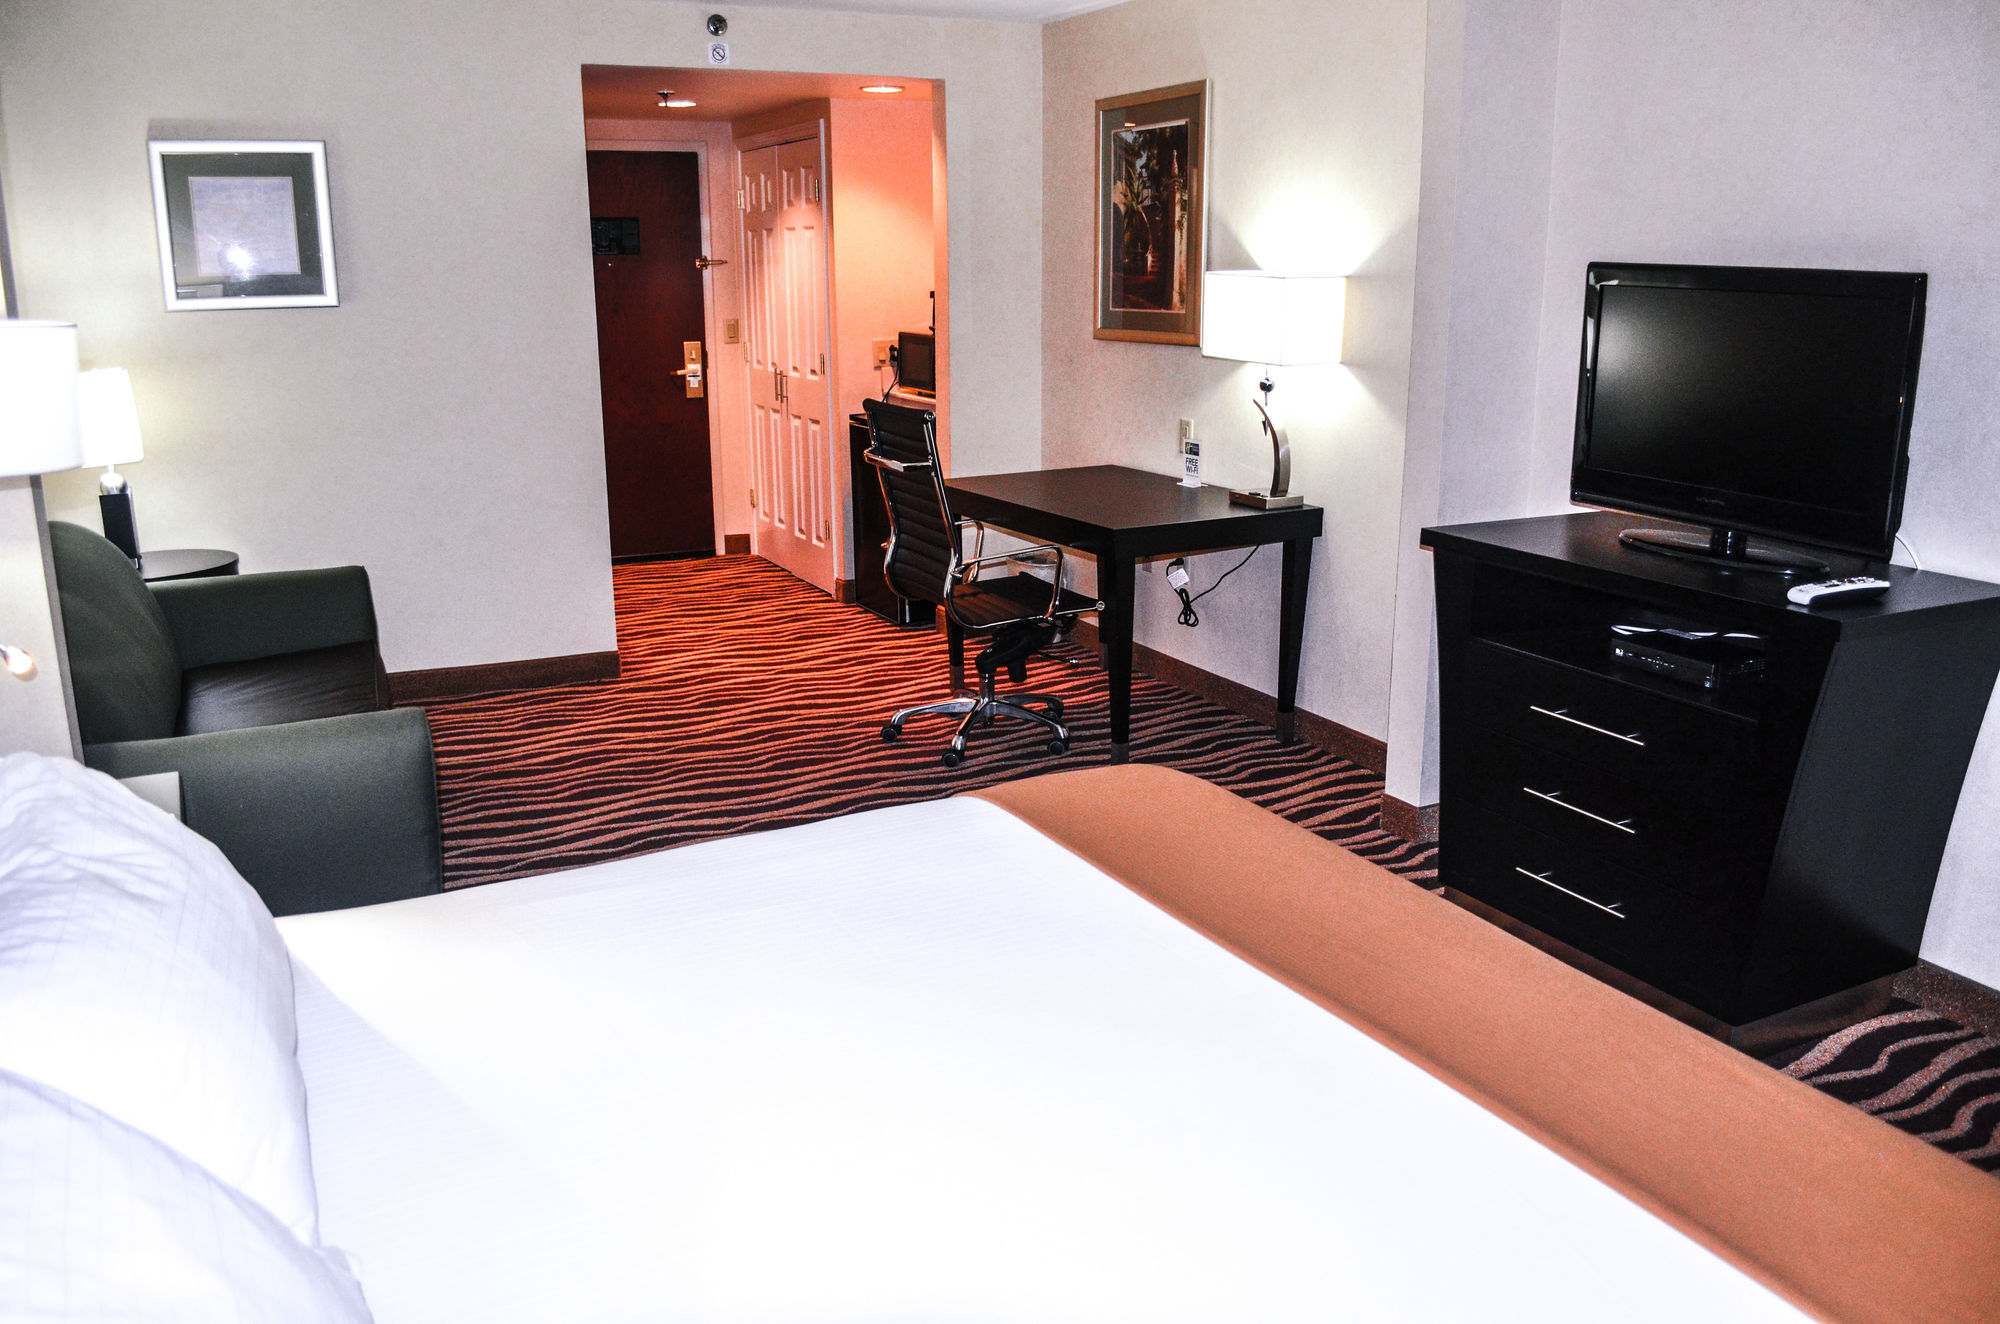 Holiday Inn Express Marietta in Marietta, GA